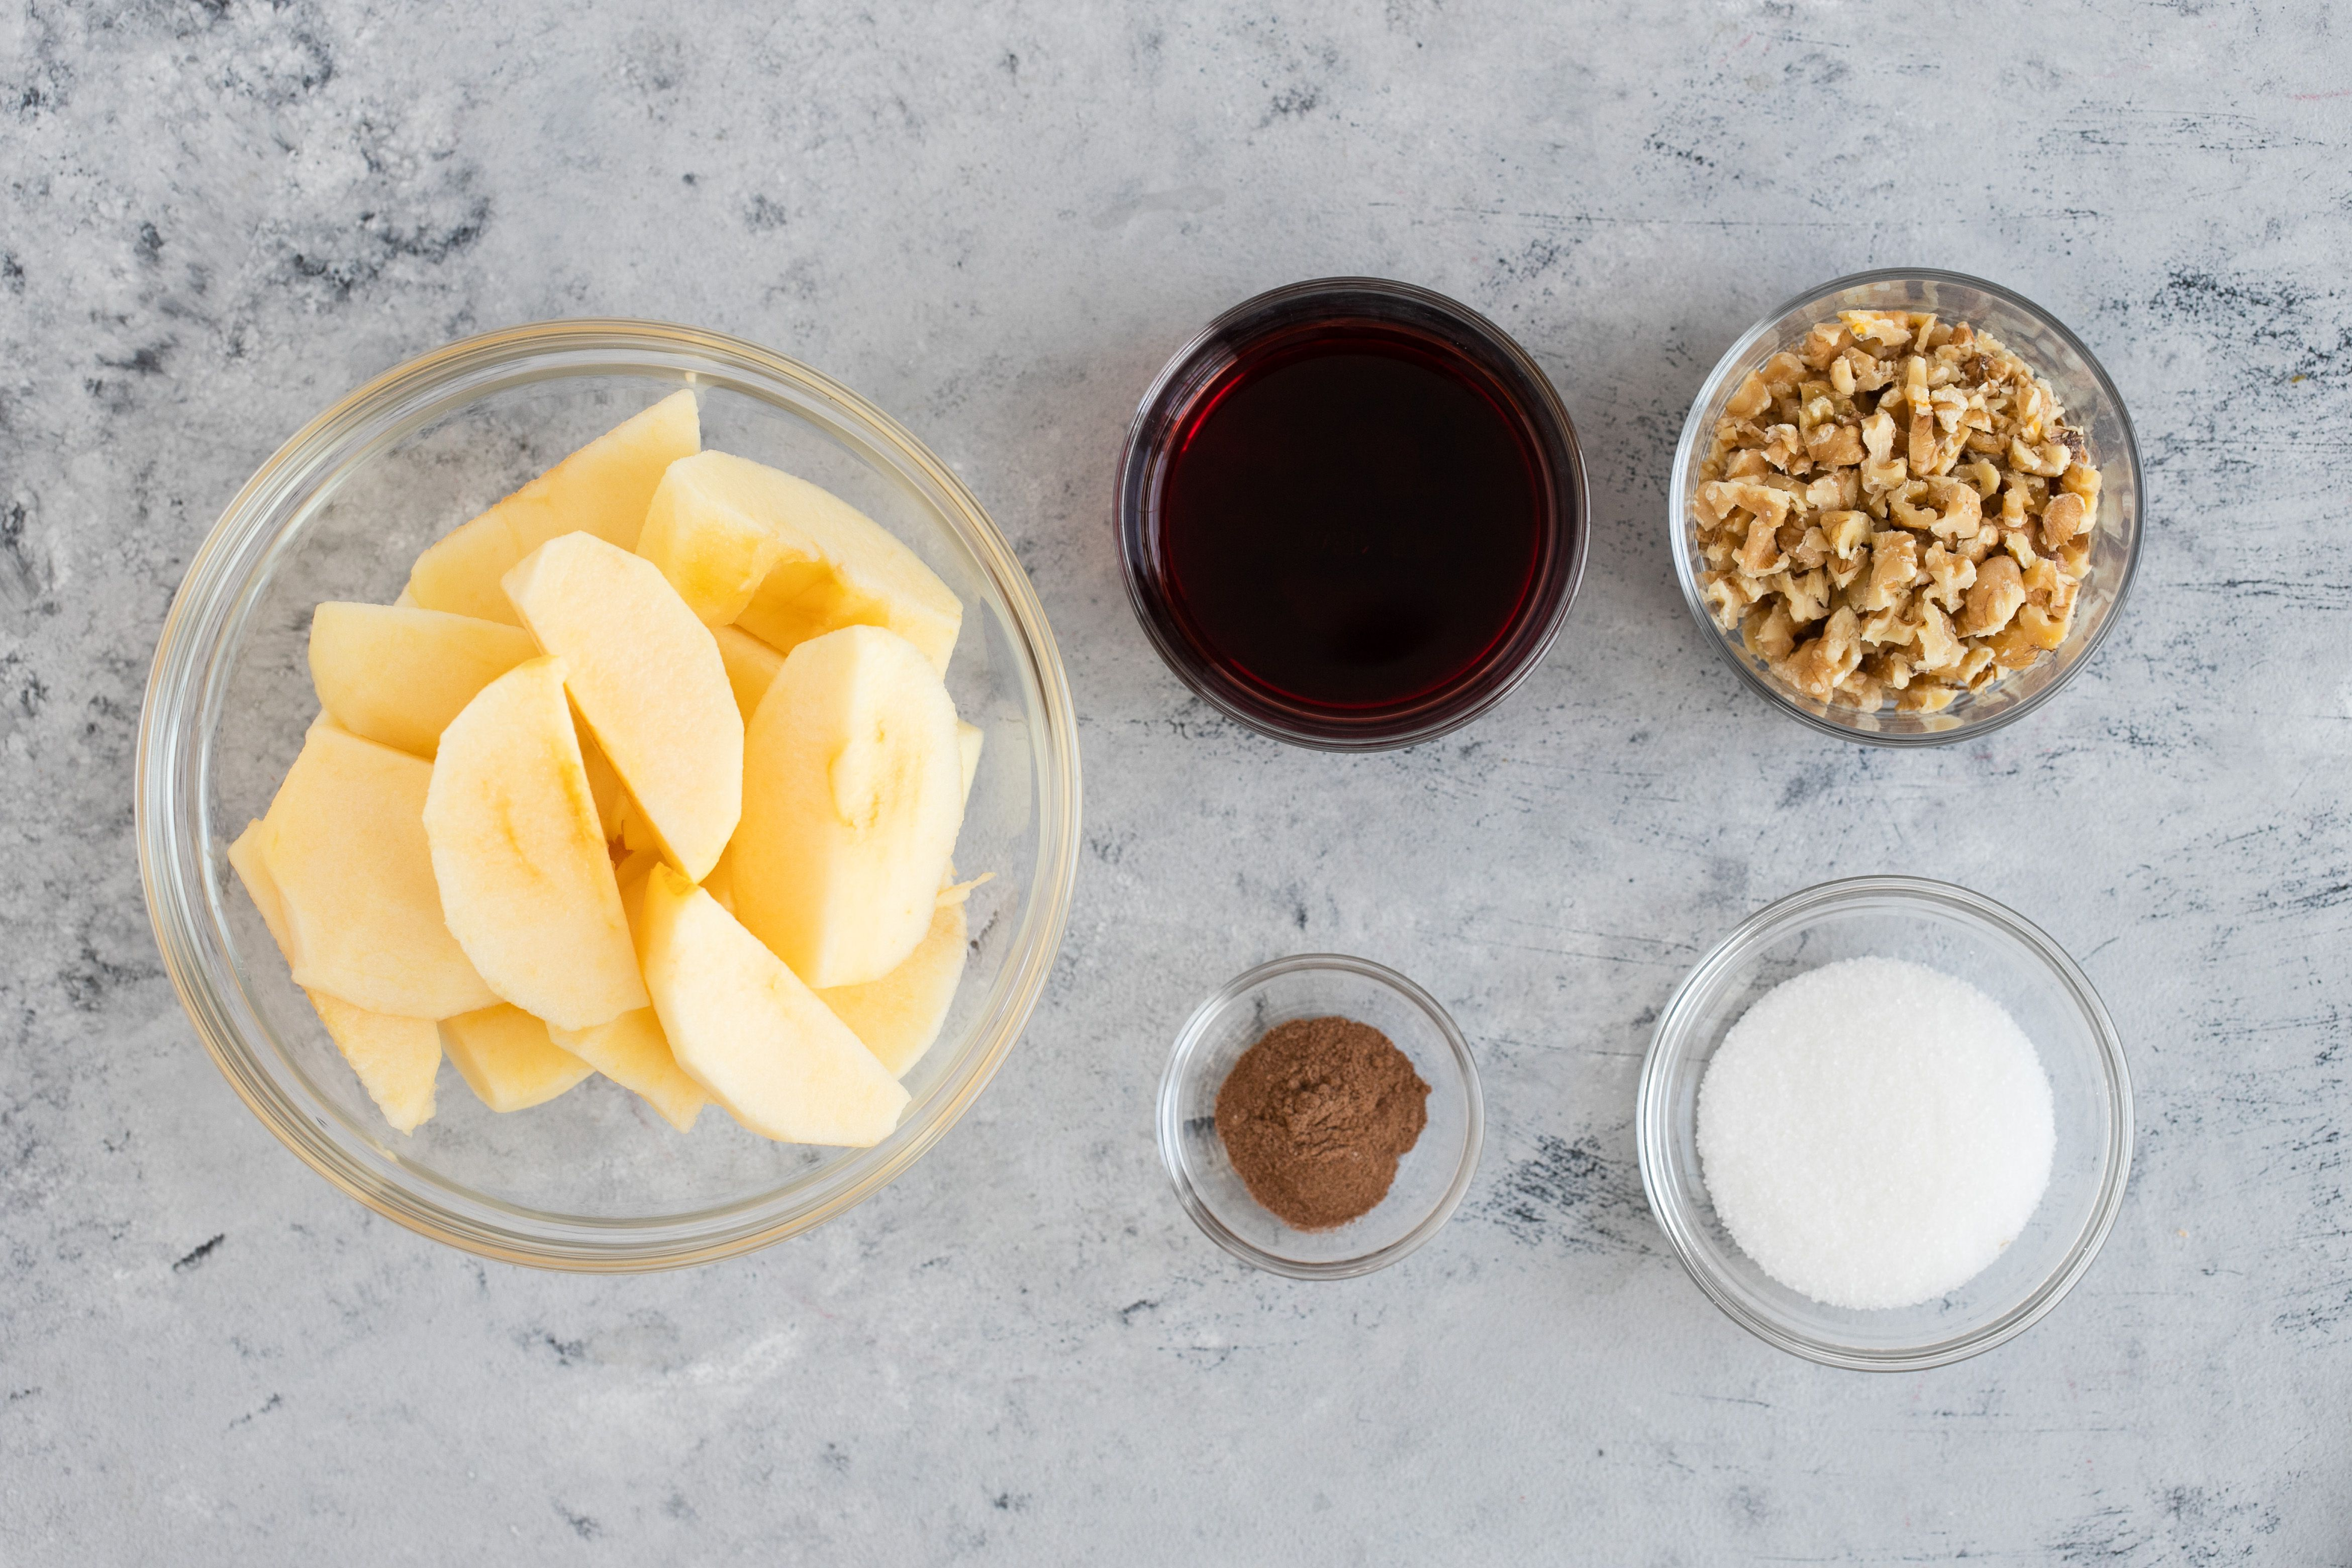 Ingredients for Apple and Walnut Charoset